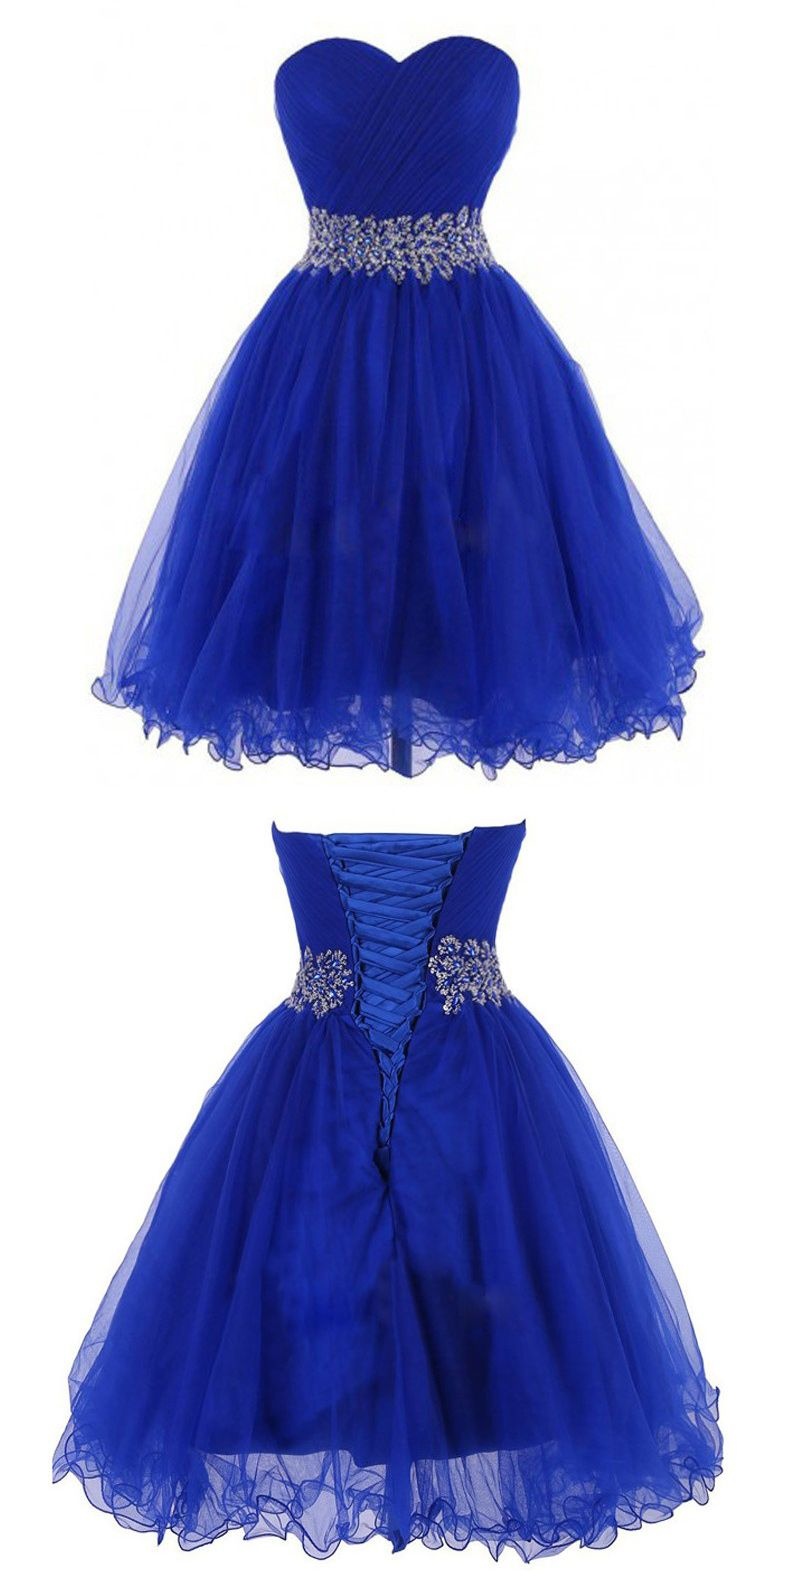 Cheap short sweetheart kneelength royal blue homecoing dress with